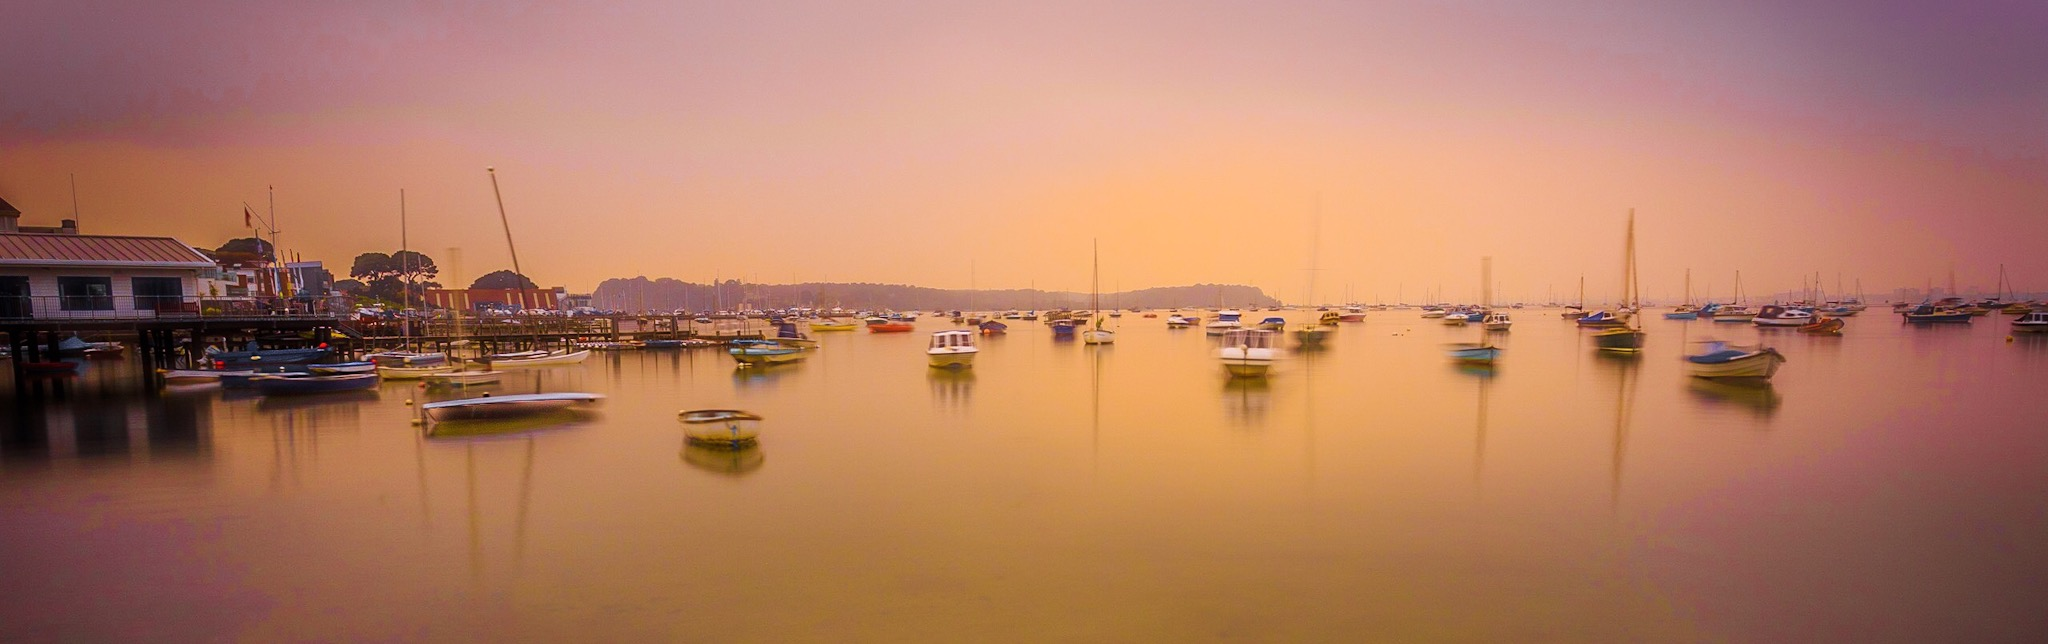 The crop to produce the panoramic picture of Sandbanks